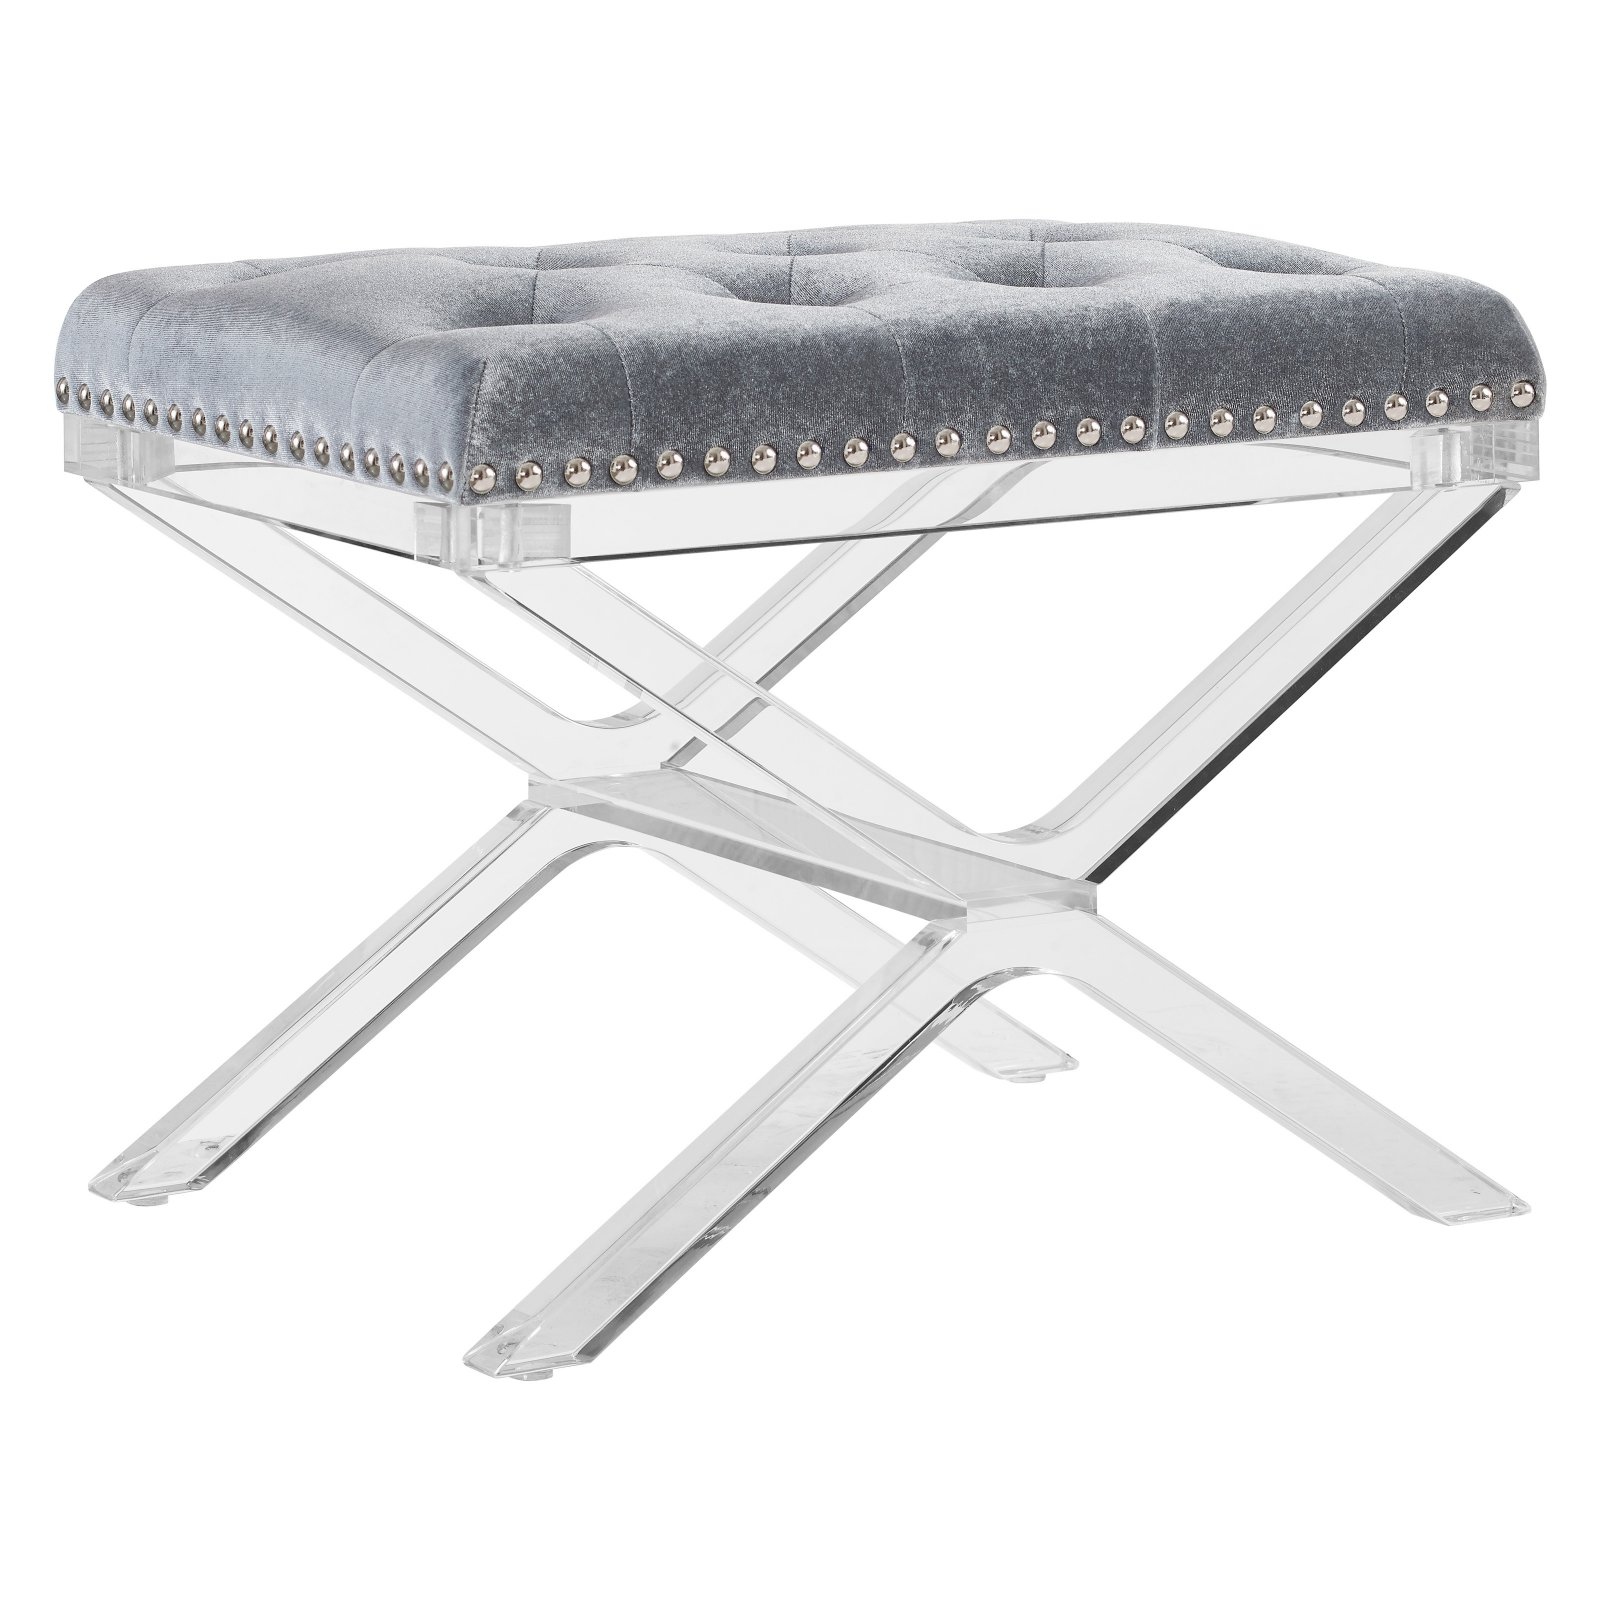 Linon Kelsi X Base Vanity Bench, Silver, Clear Legs, 18 inches Tall by Linon